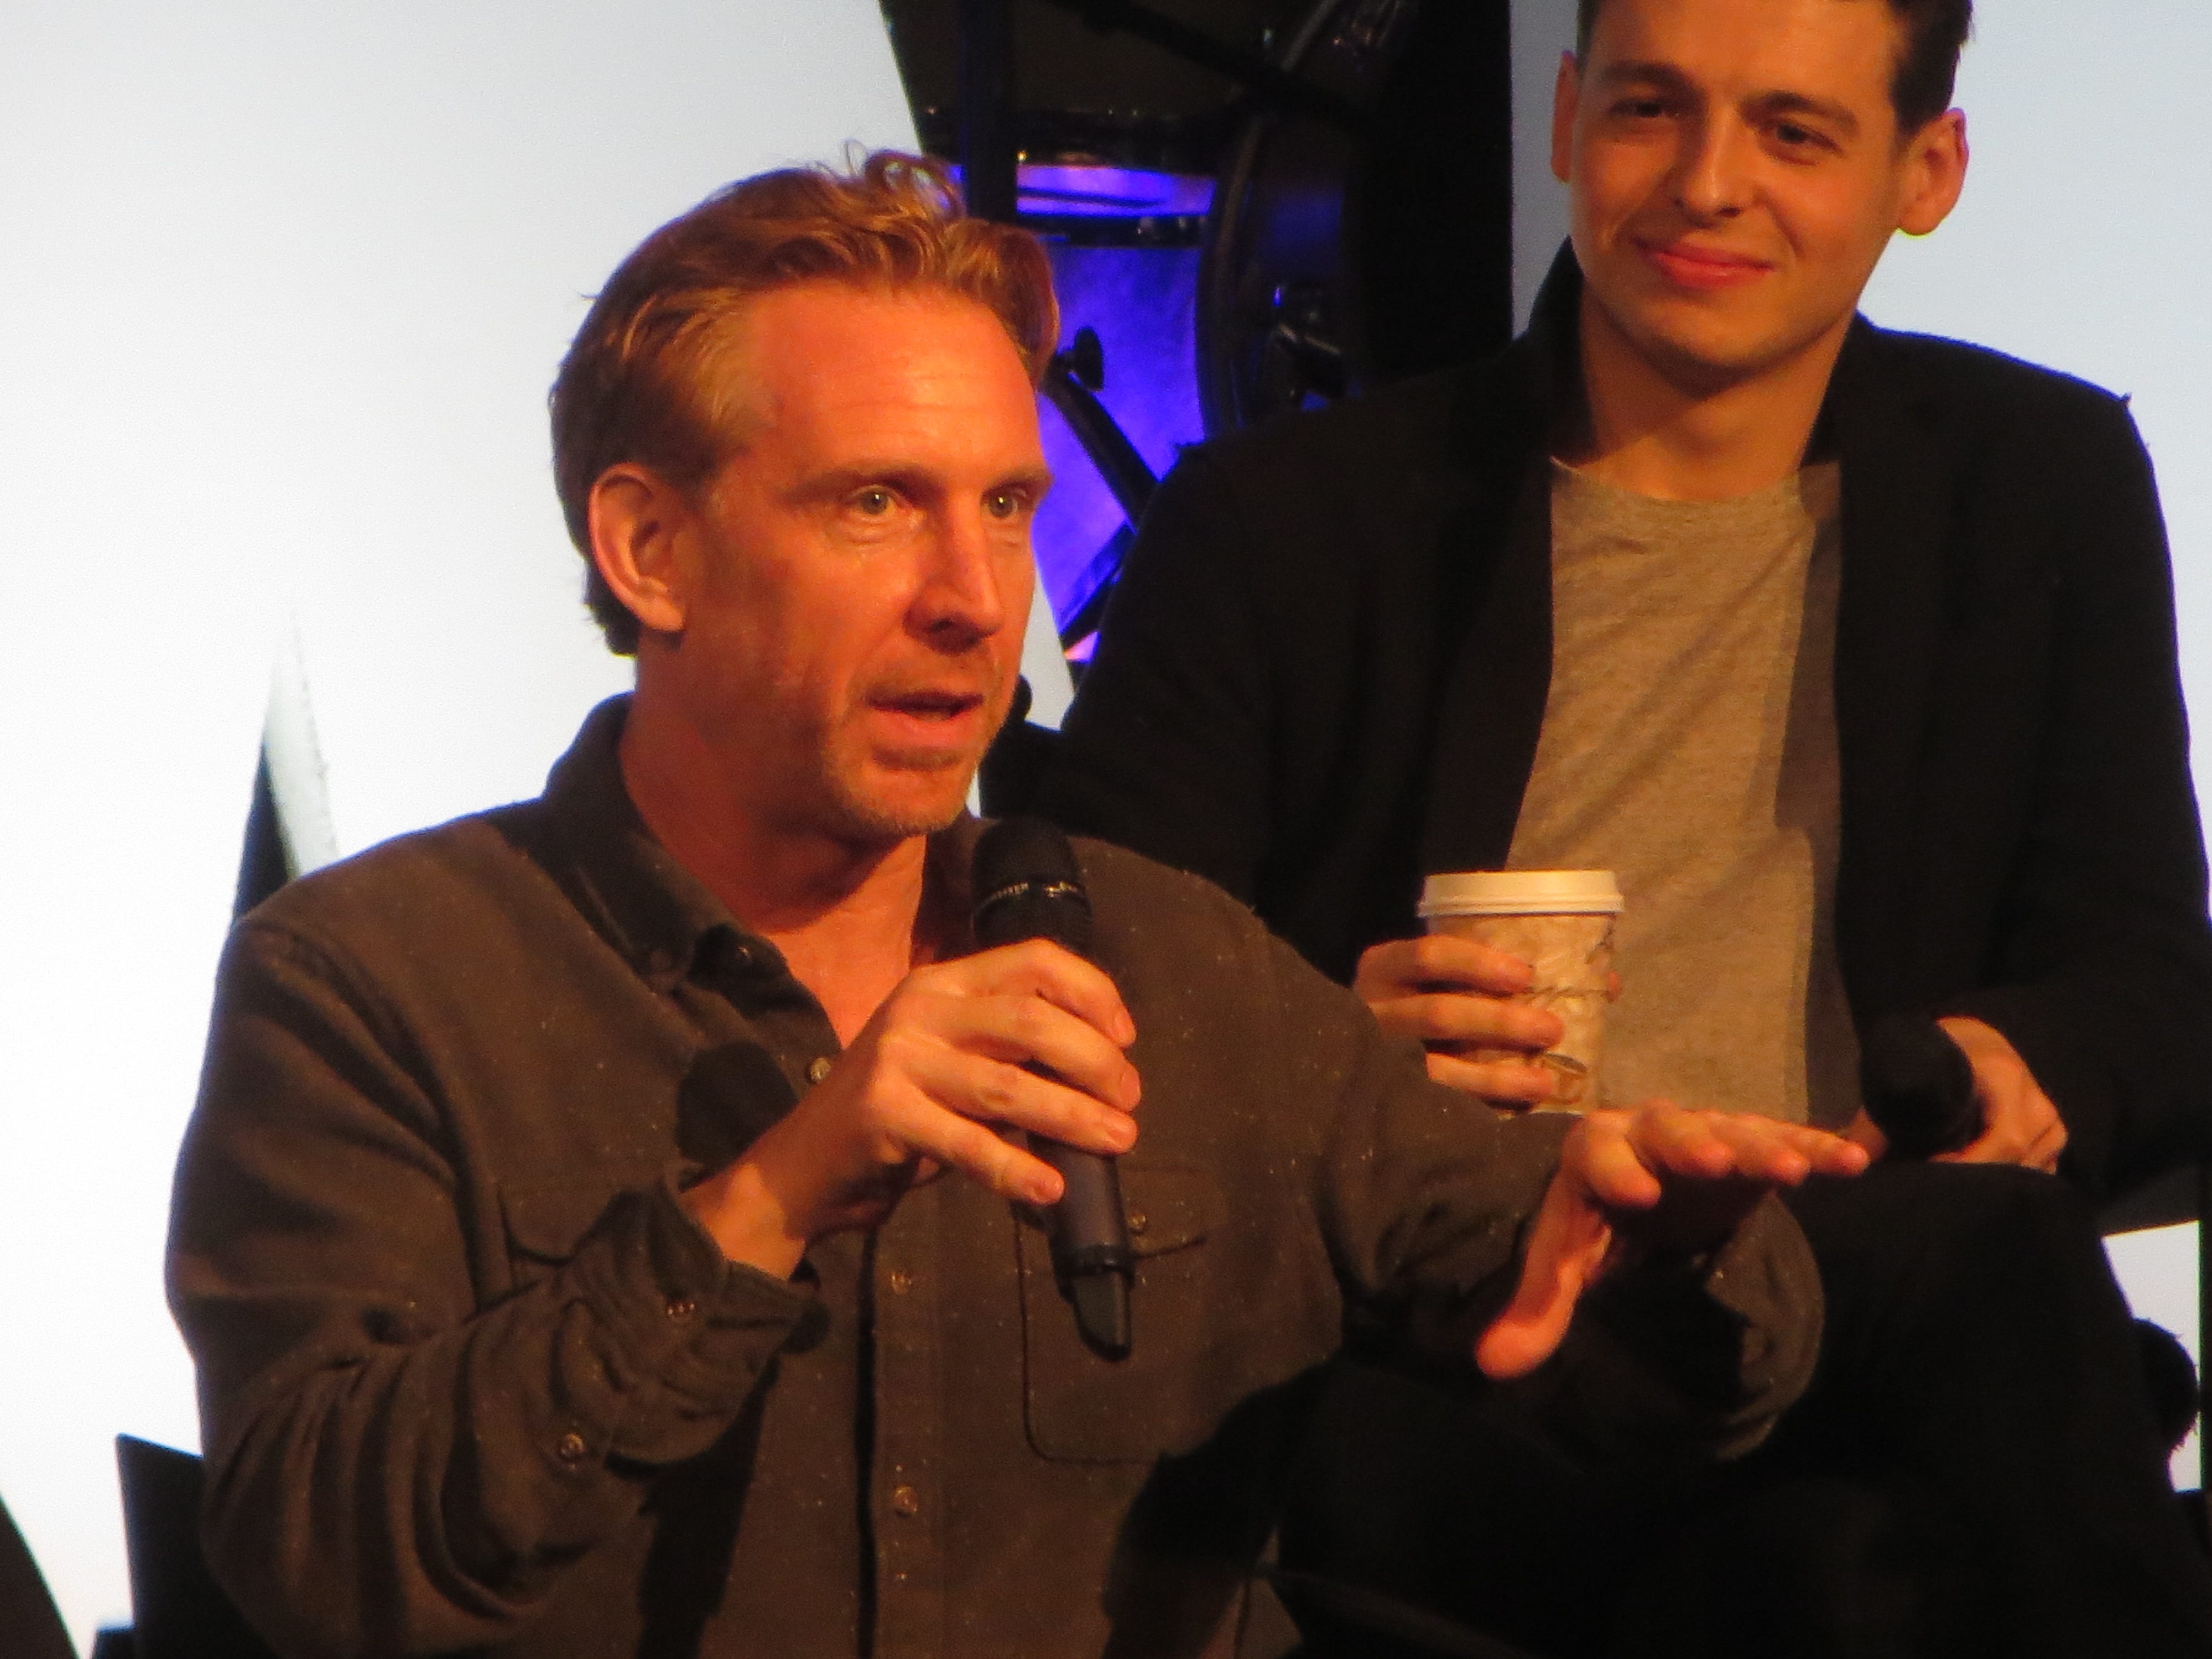 """Paul Thornley speaks during the """"Harry Potter and the Cursed Child"""" spotlight at BroadwayCon 2019, held Jan. 11 to 13, 2019, at the New York Hilton Midtown in Manhattan."""